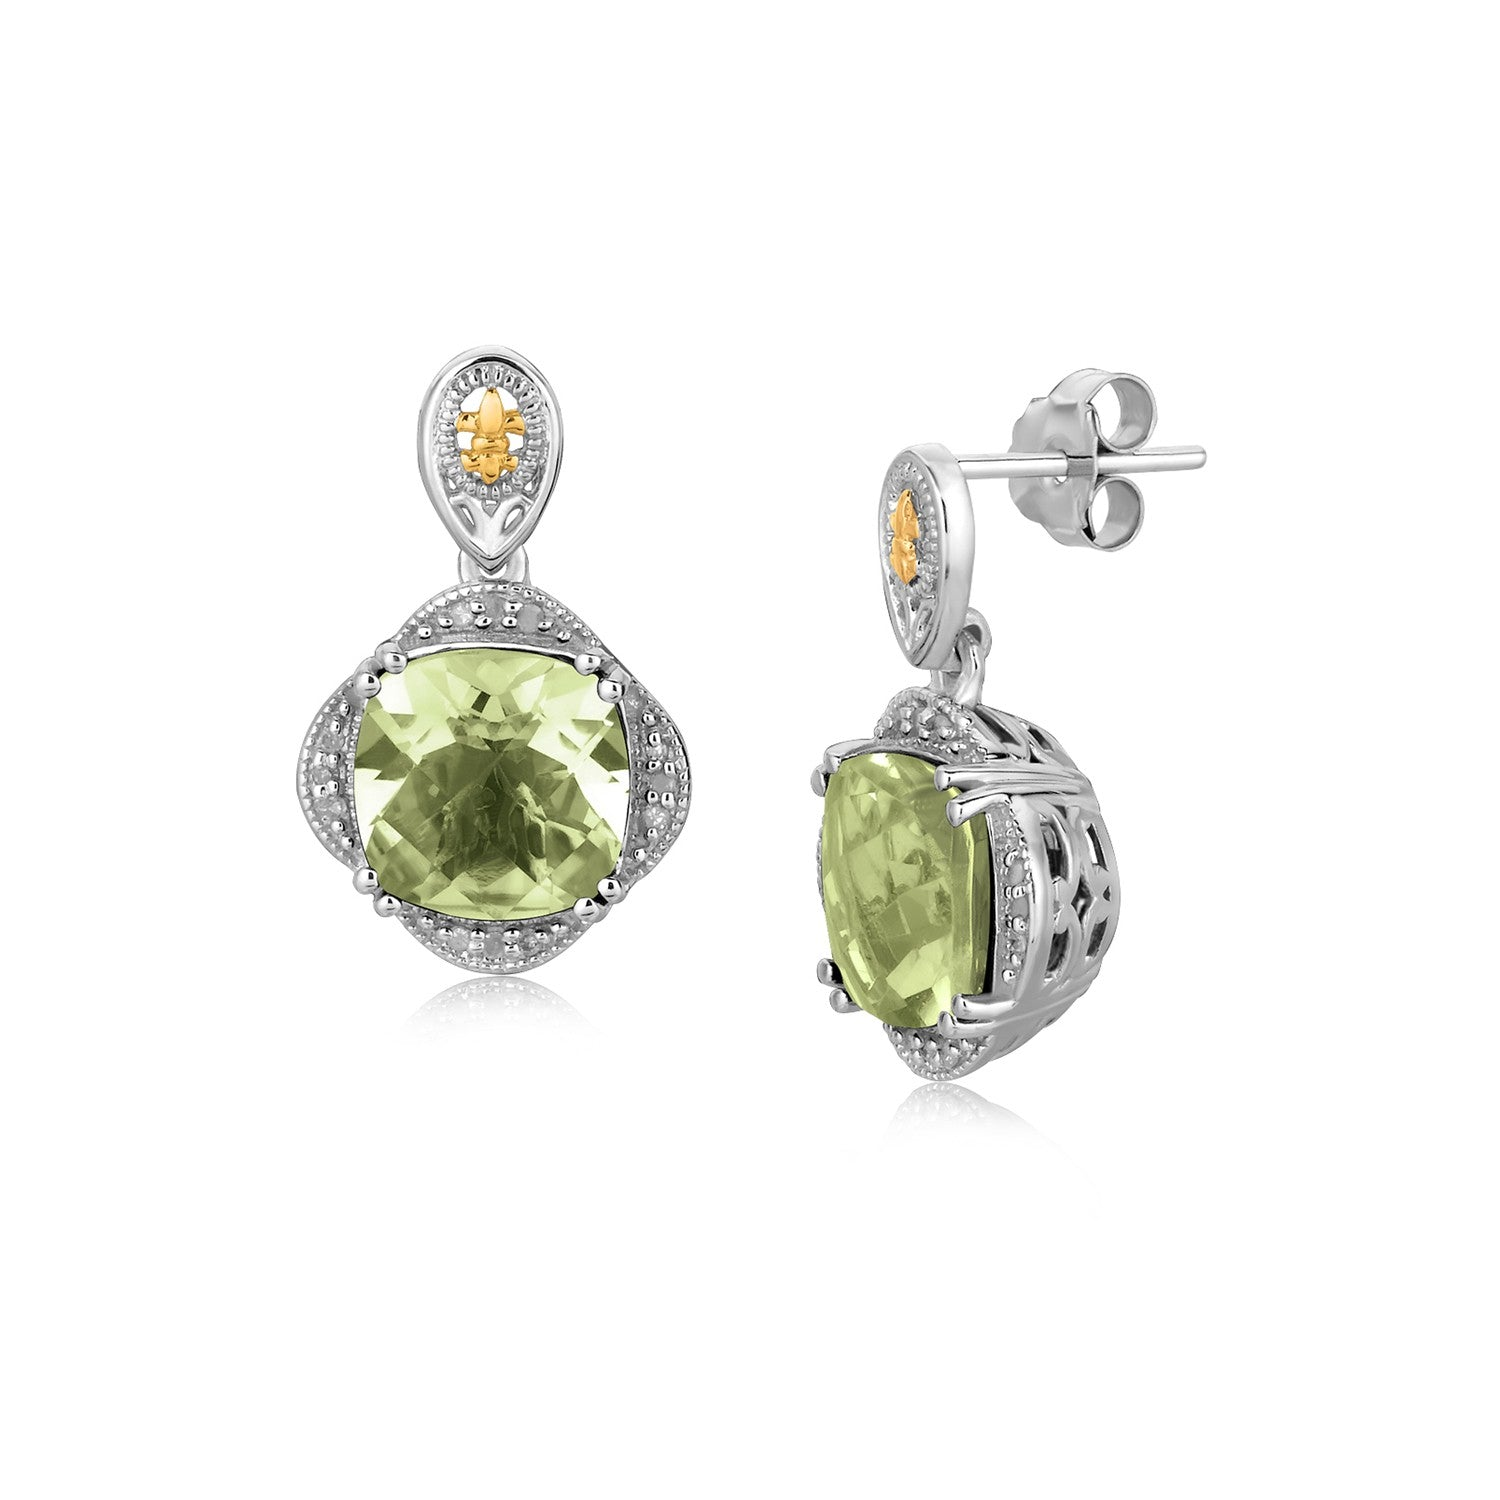 Unique Modern Paris Style 18K Yellow Gold and Sterling Silver Green Amethyst and Diamond Earrings